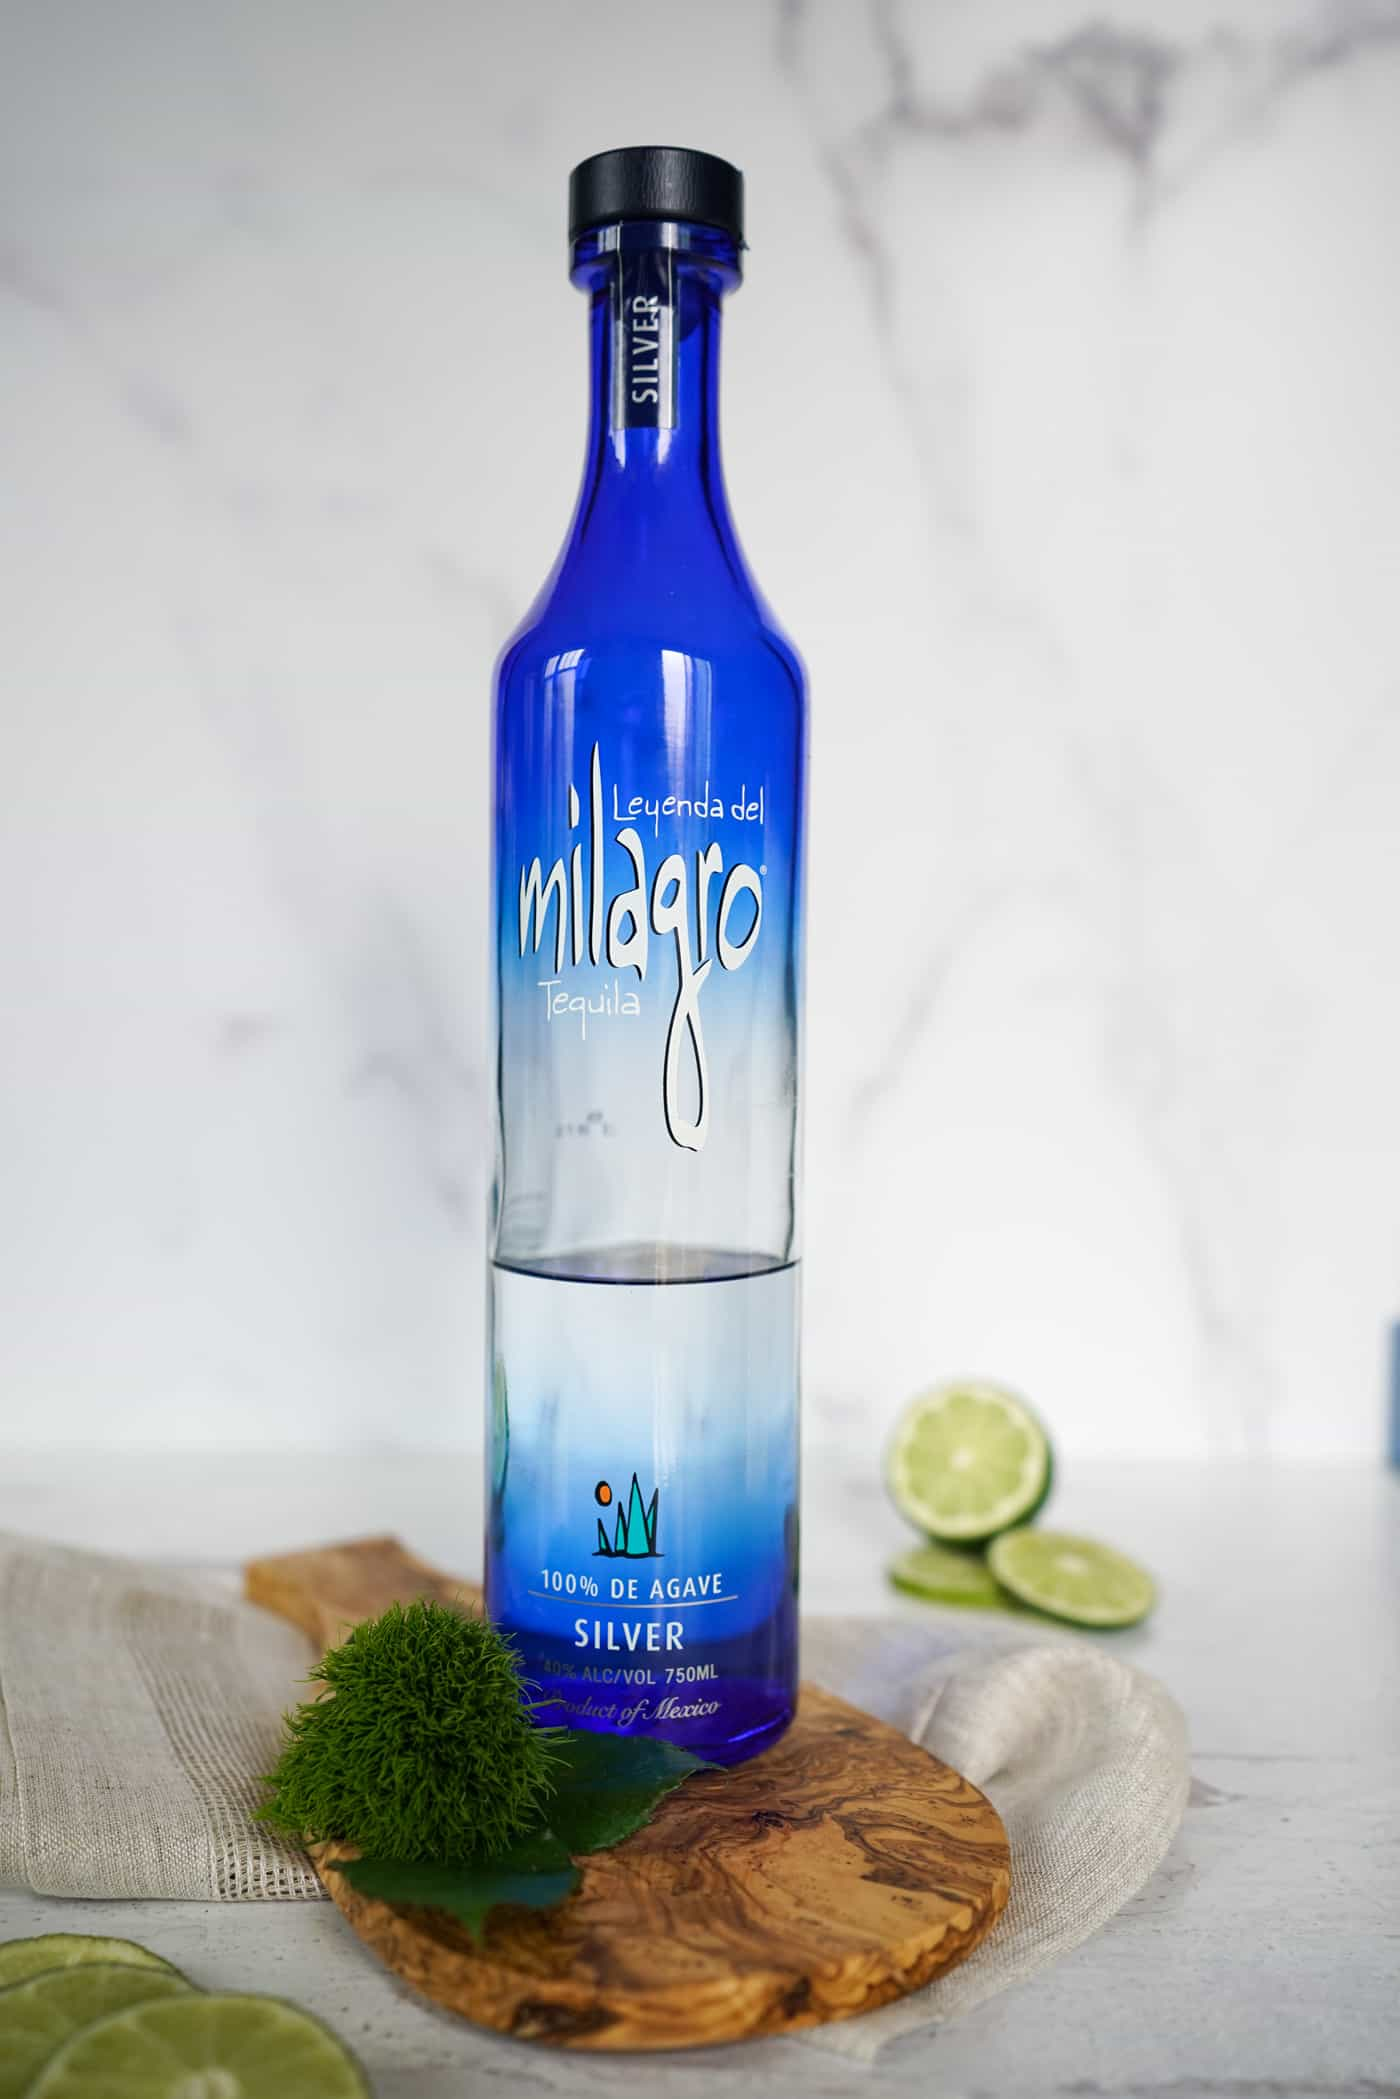 A bottle of Milagro Silver Tequila